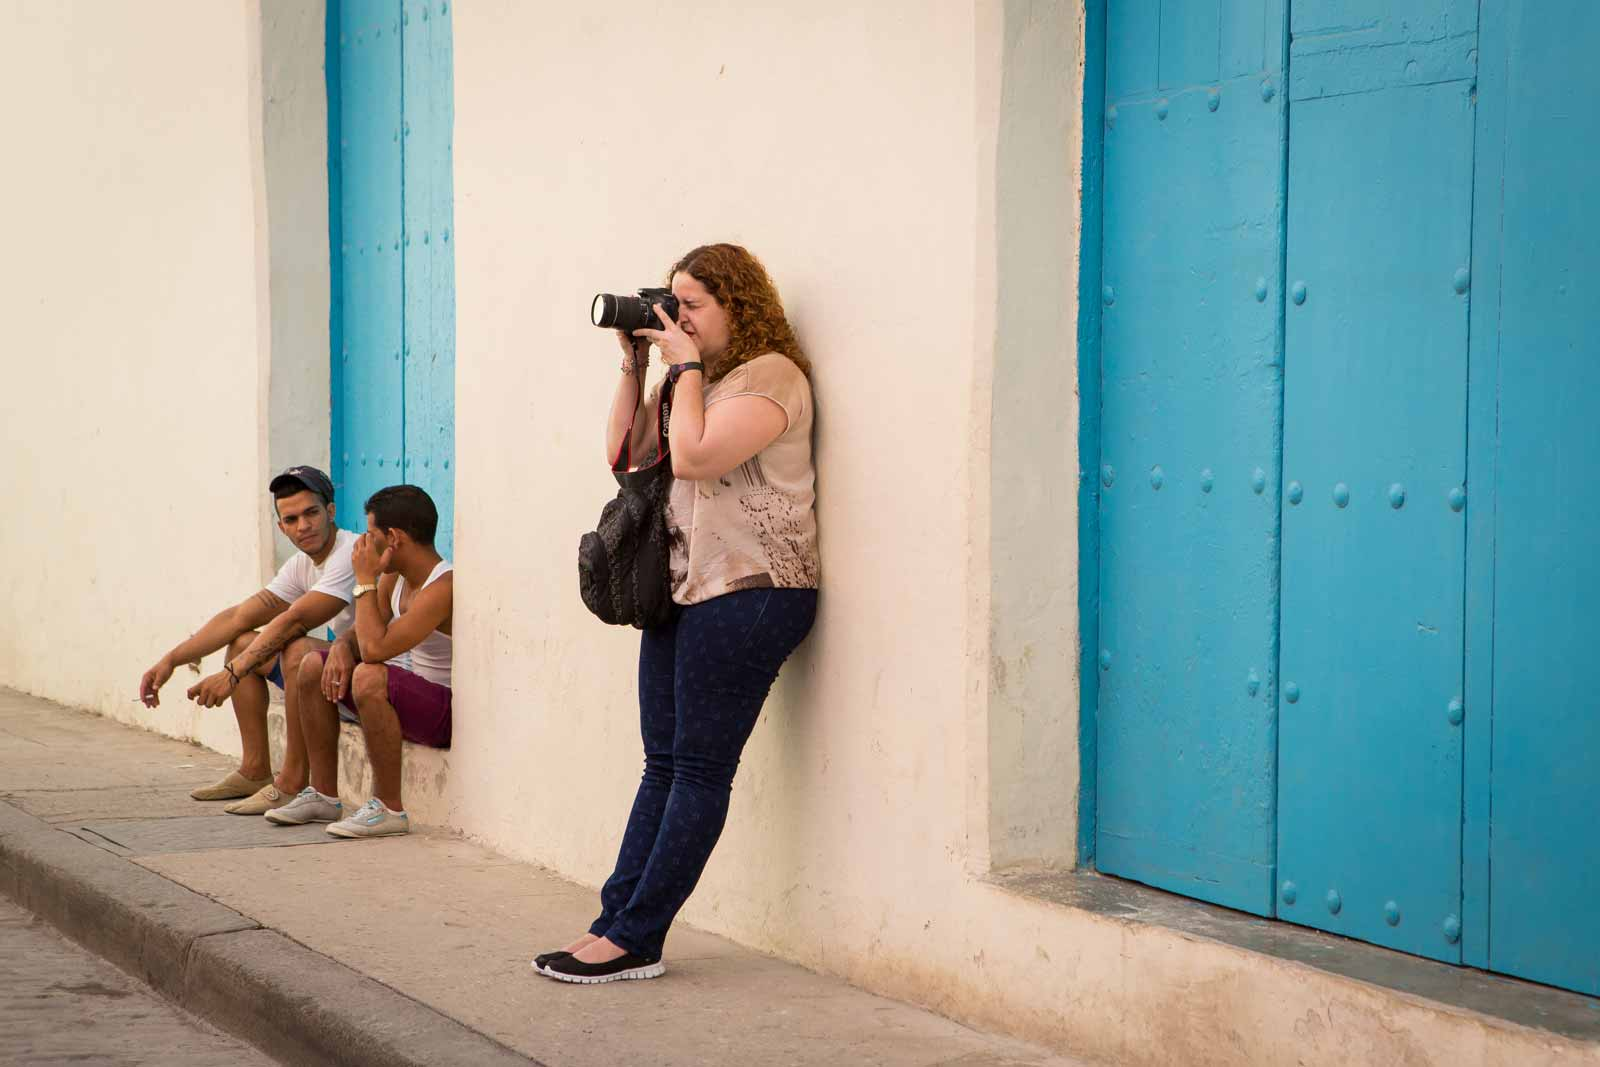 nationalgeographic-cuba-foto-tour